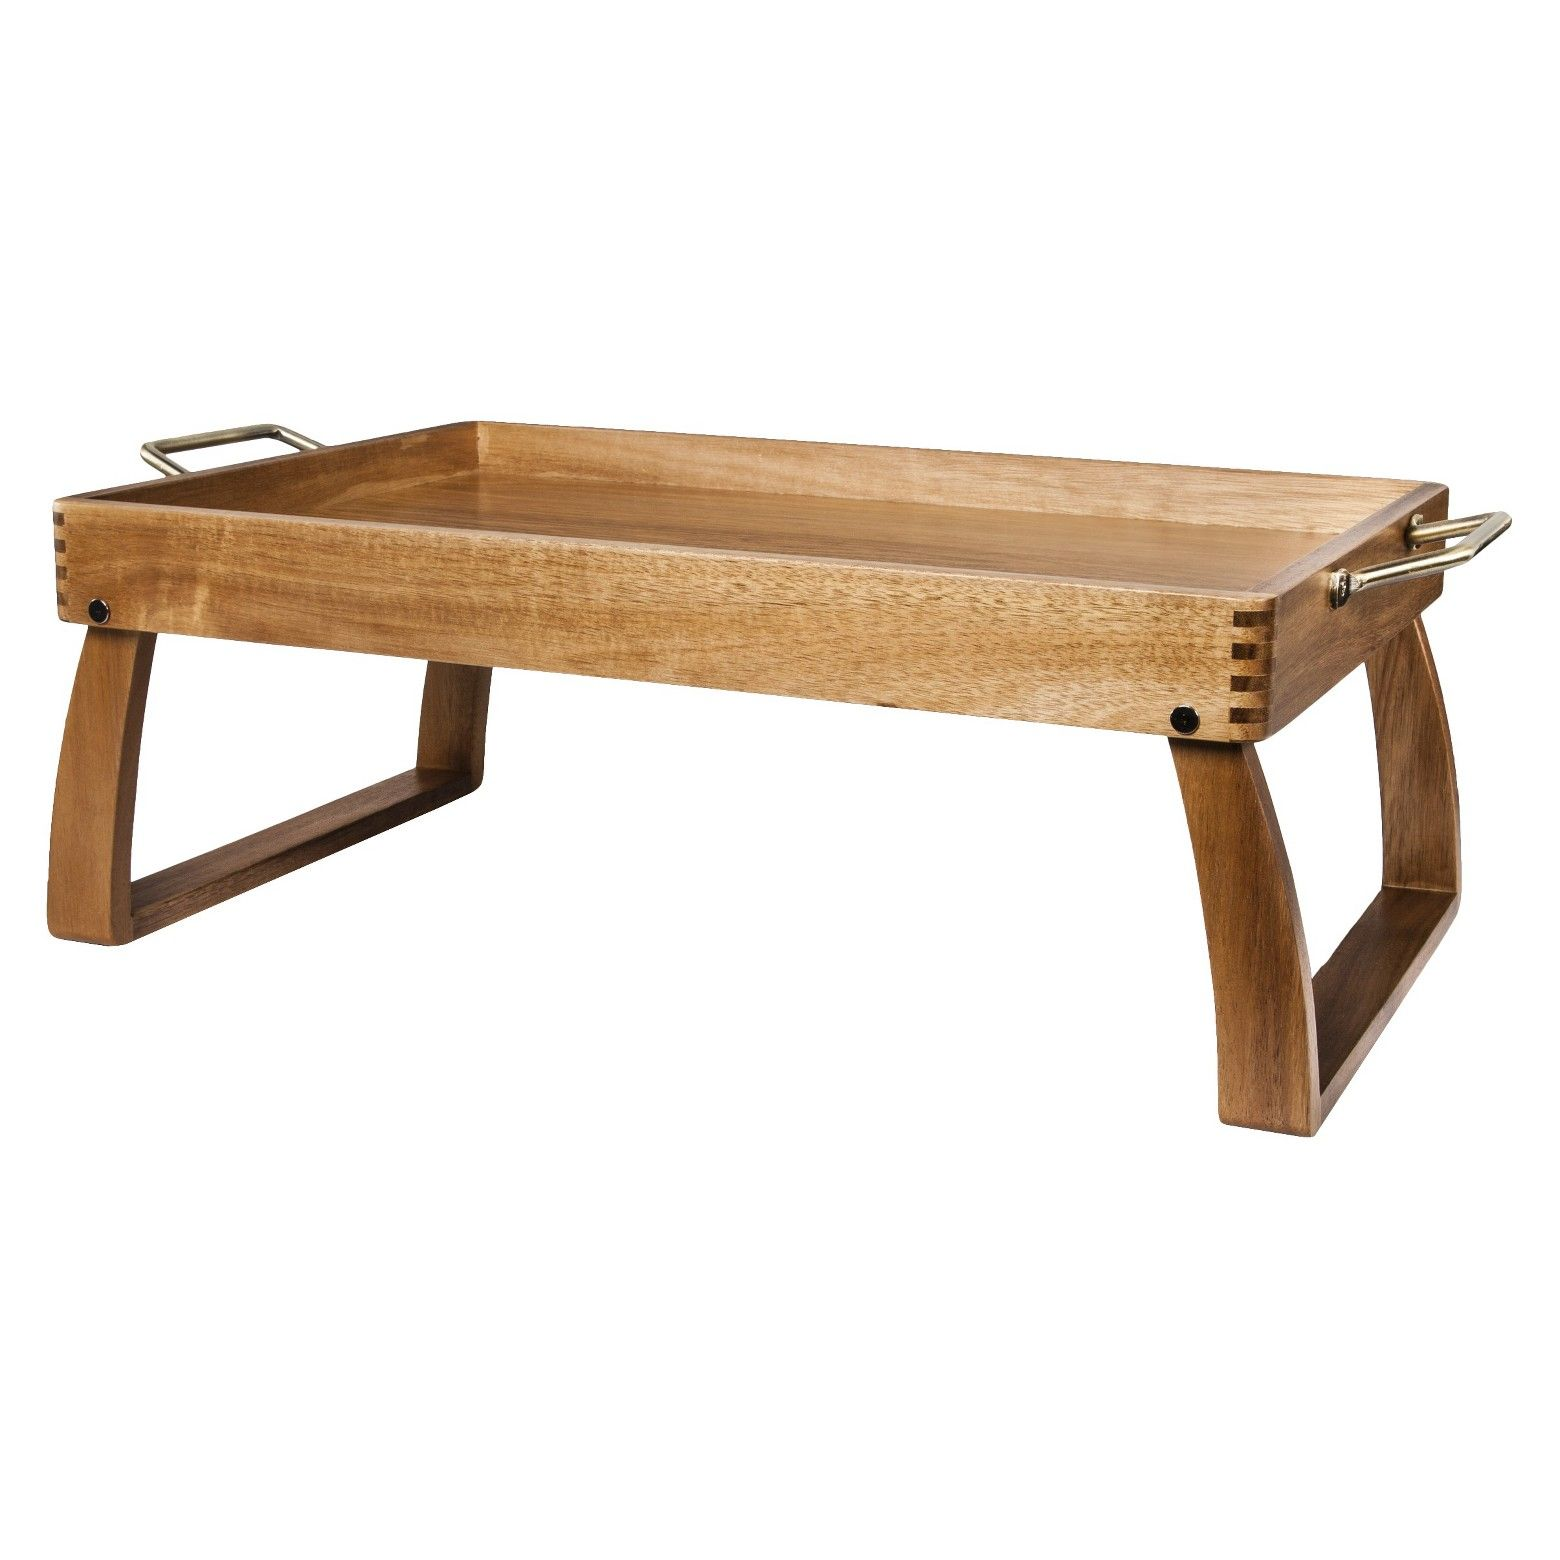 Take Breakfast In Bed Up A Notch With The Charming Threshold Acacia Bed Tray This Stylish Serving Tray Features Metal Side Han Bed Tray Diy Bed Tray Bed Table